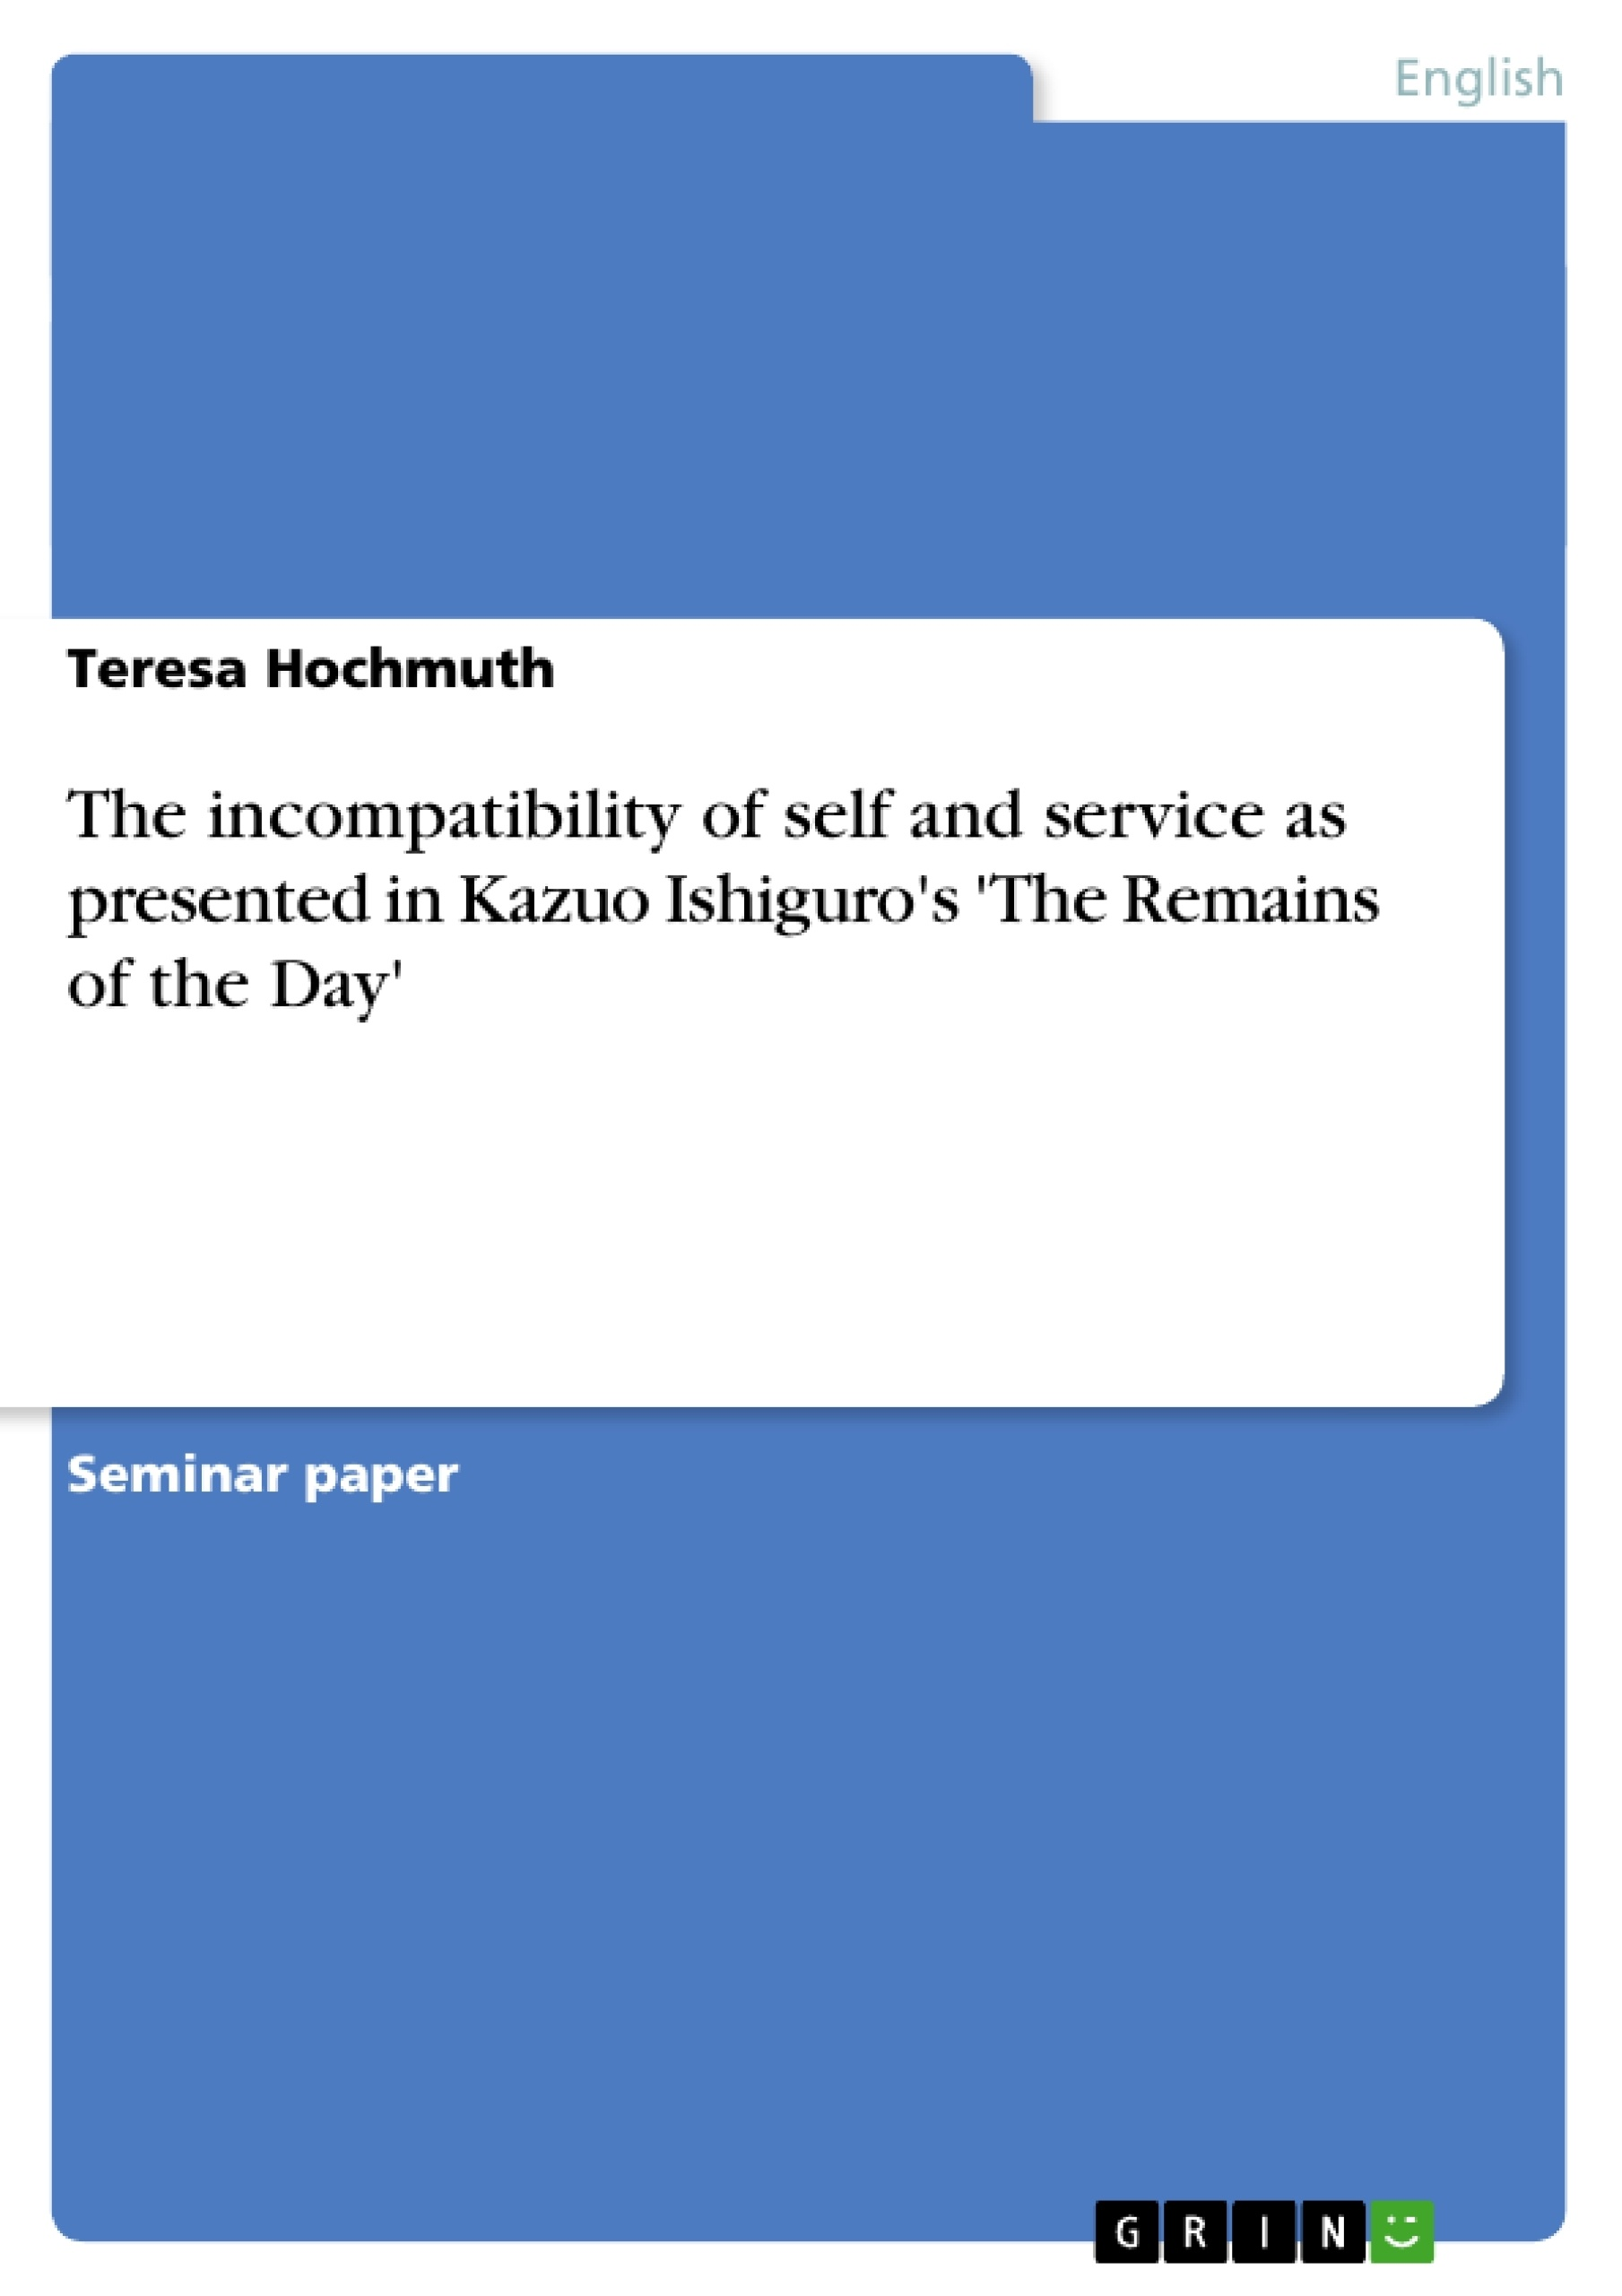 Title: The incompatibility of self and service as presented in Kazuo Ishiguro's 'The Remains of the Day'